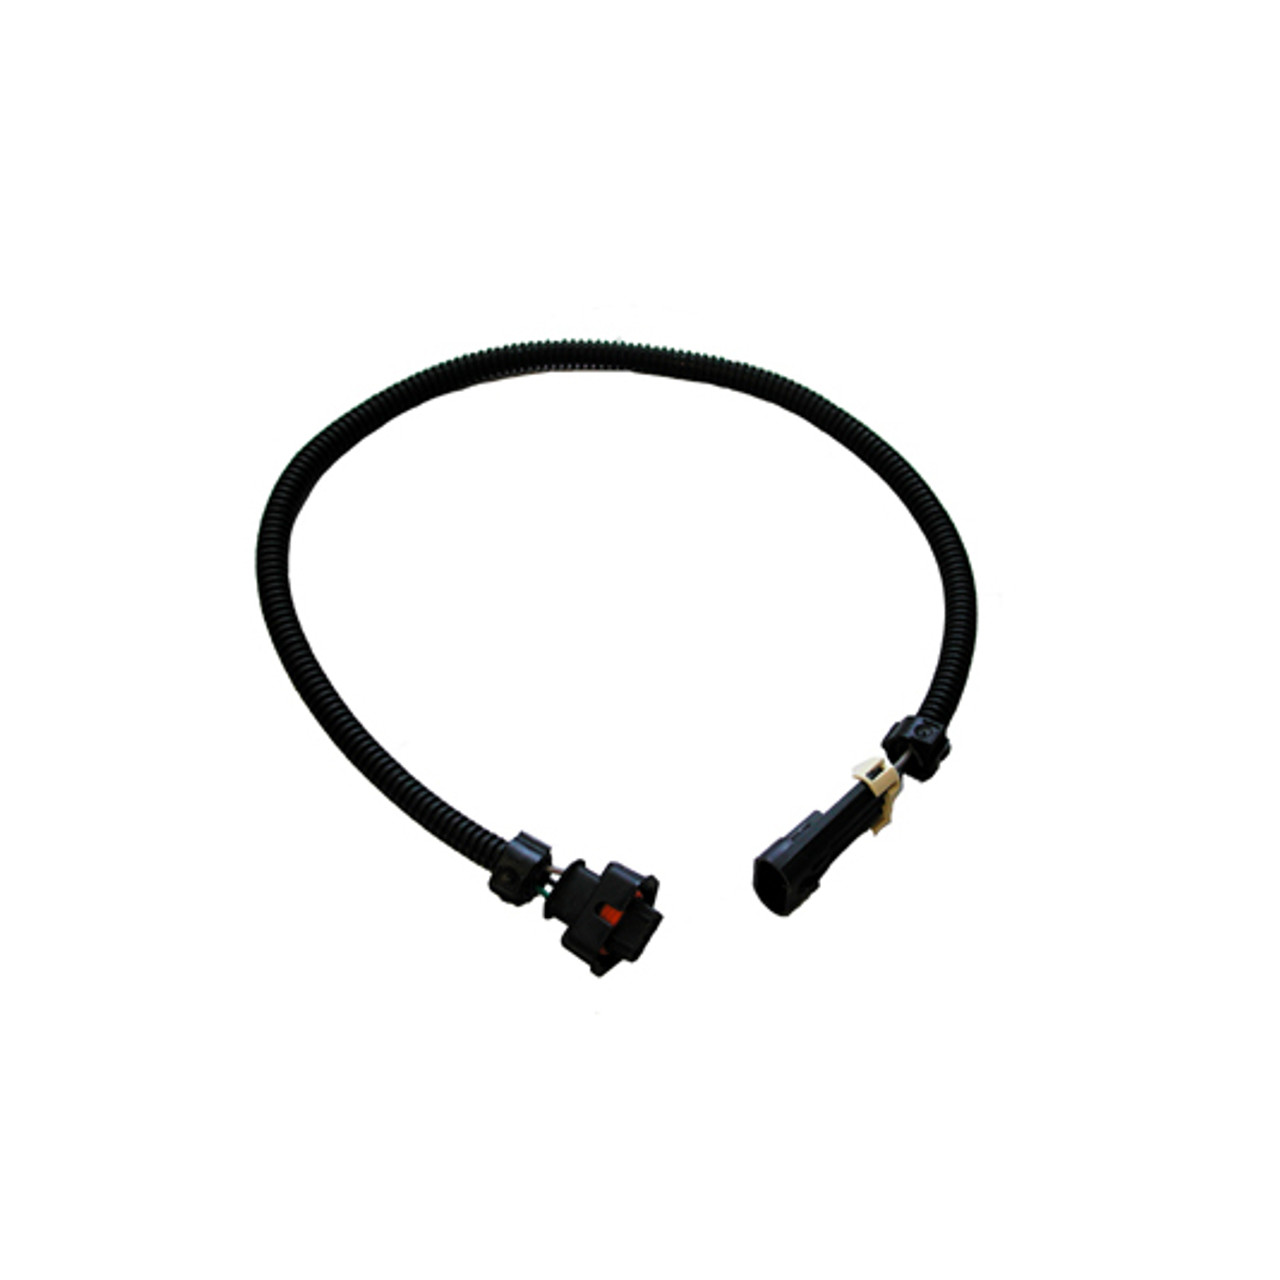 """12"""" Intake Manifold MAP Sensor Extension Cable Adapter for LS1 LS6 to LS2 L76"""